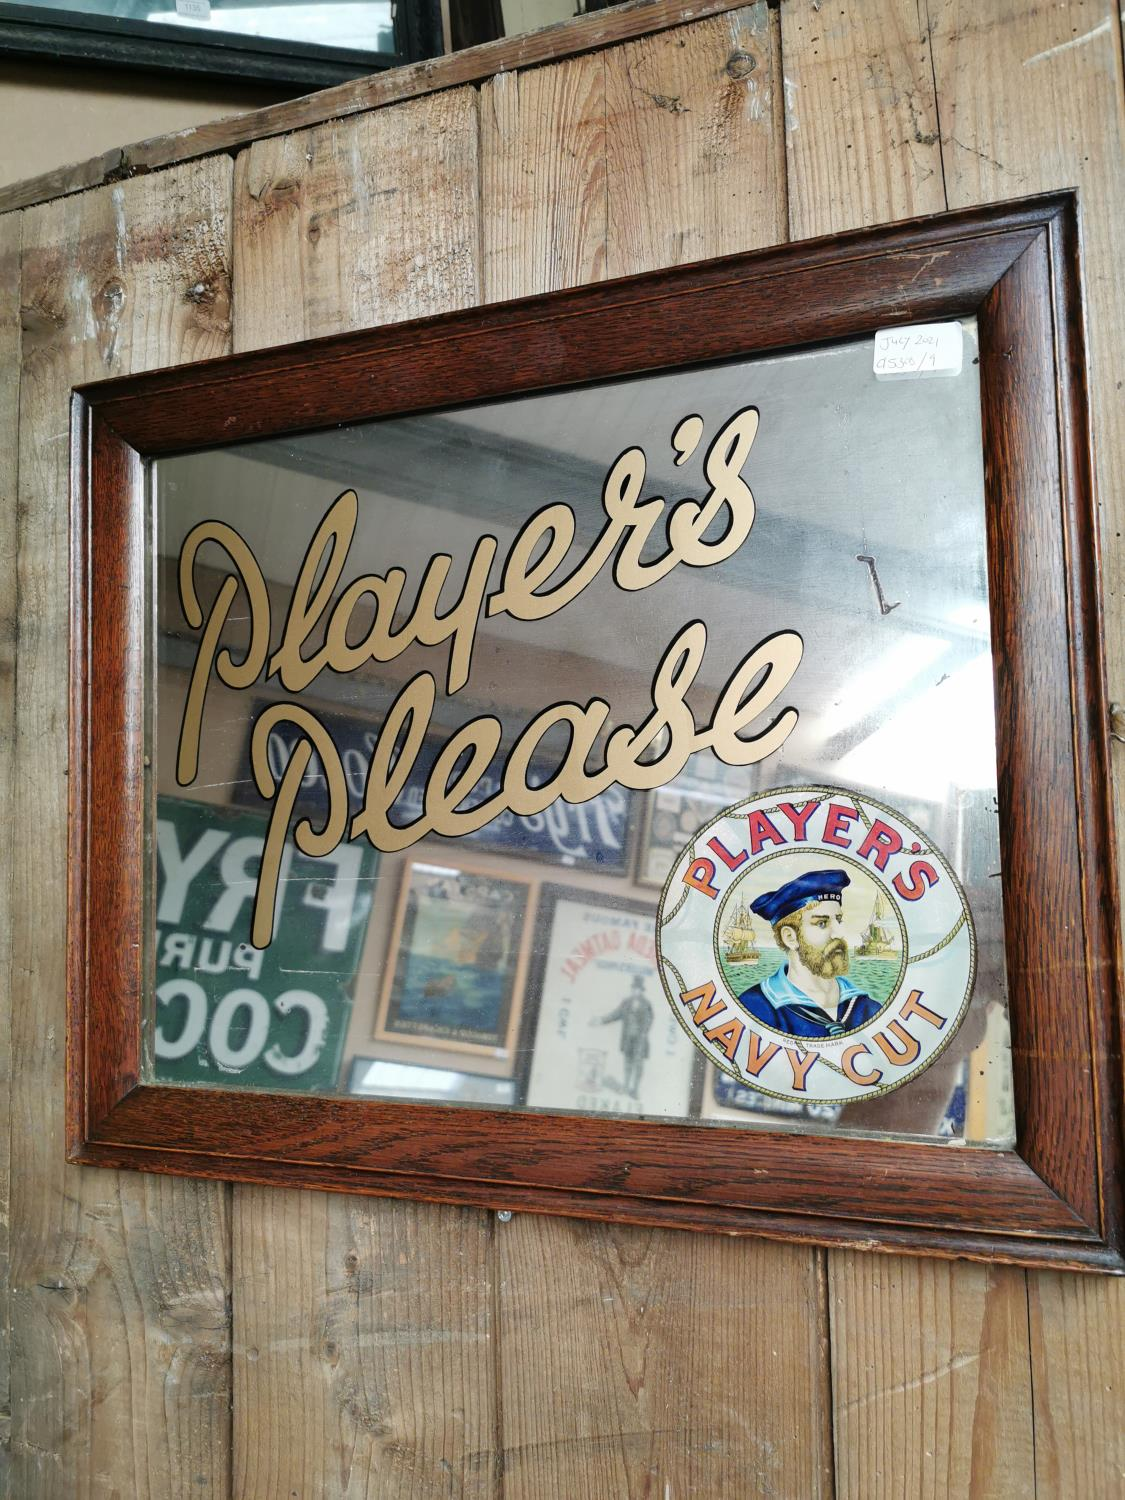 Players Please Navy Cut advertising mirror.